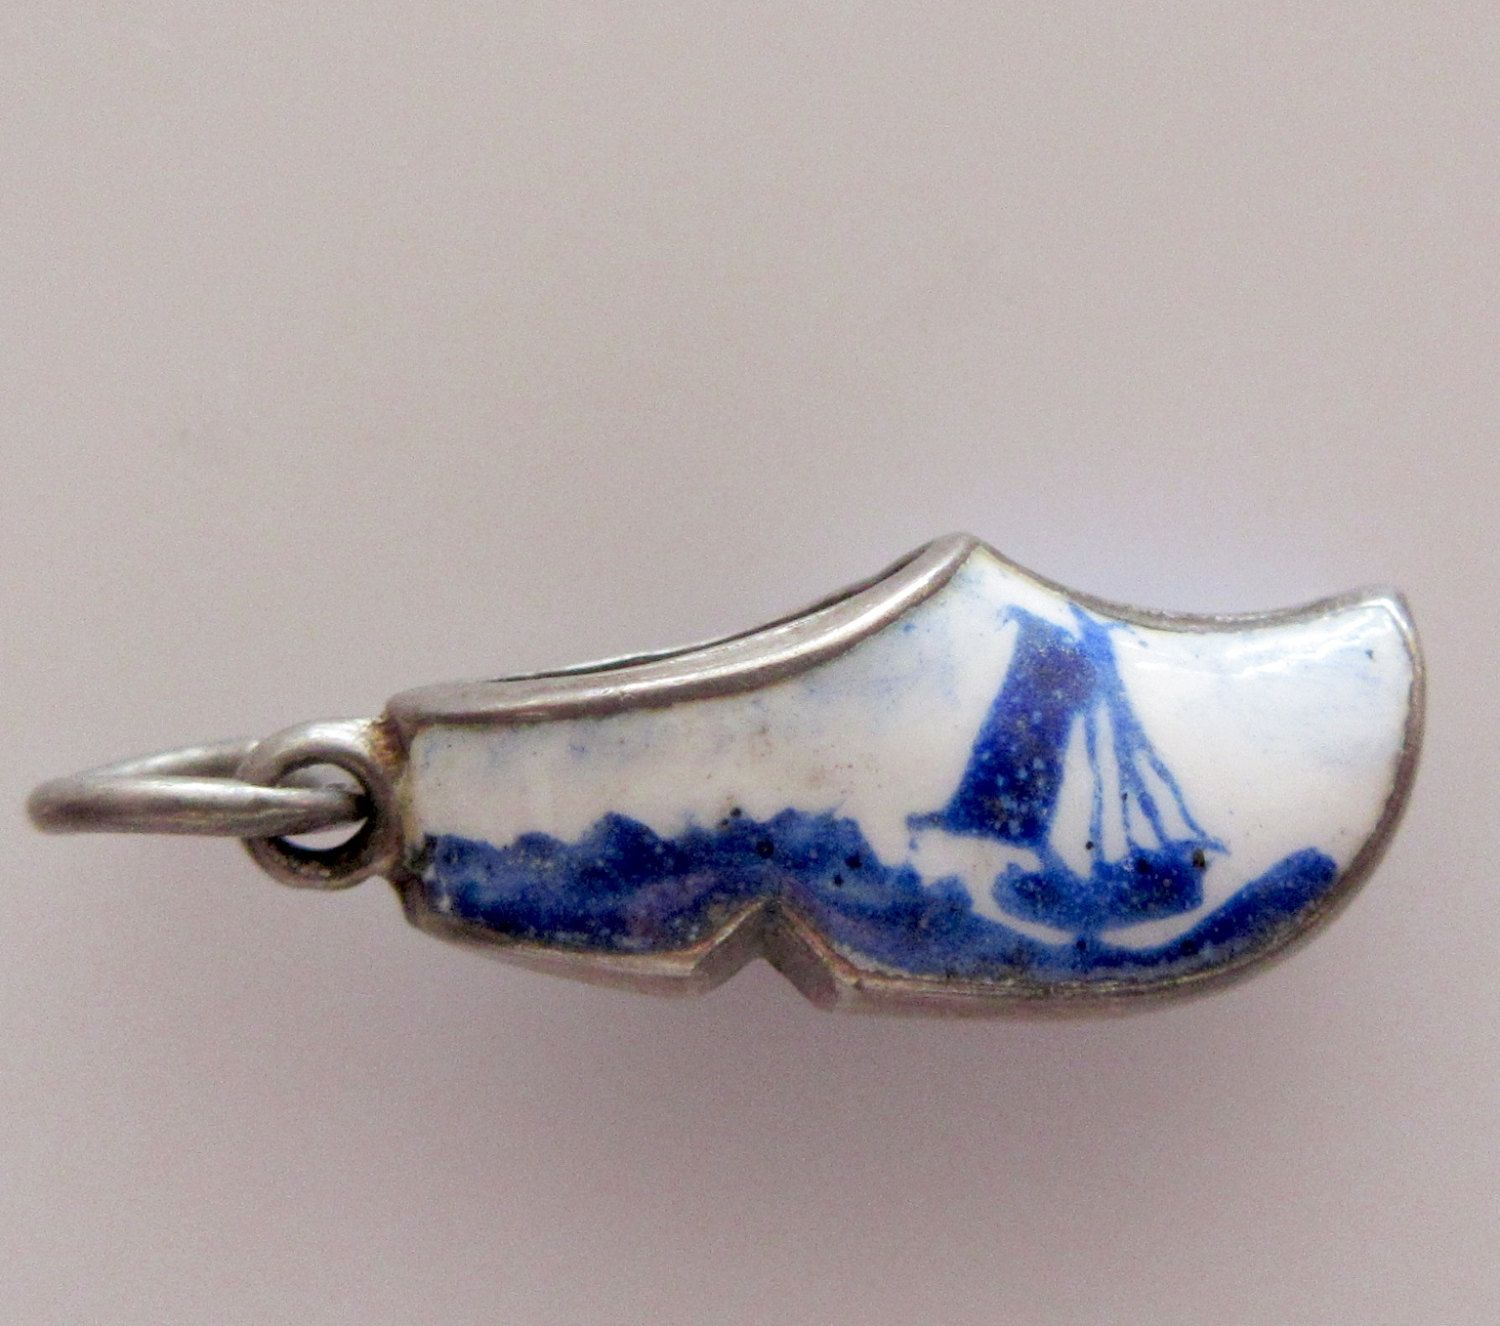 Silver CHIM Dutch Clog Charm For Bracelet or Pendant by